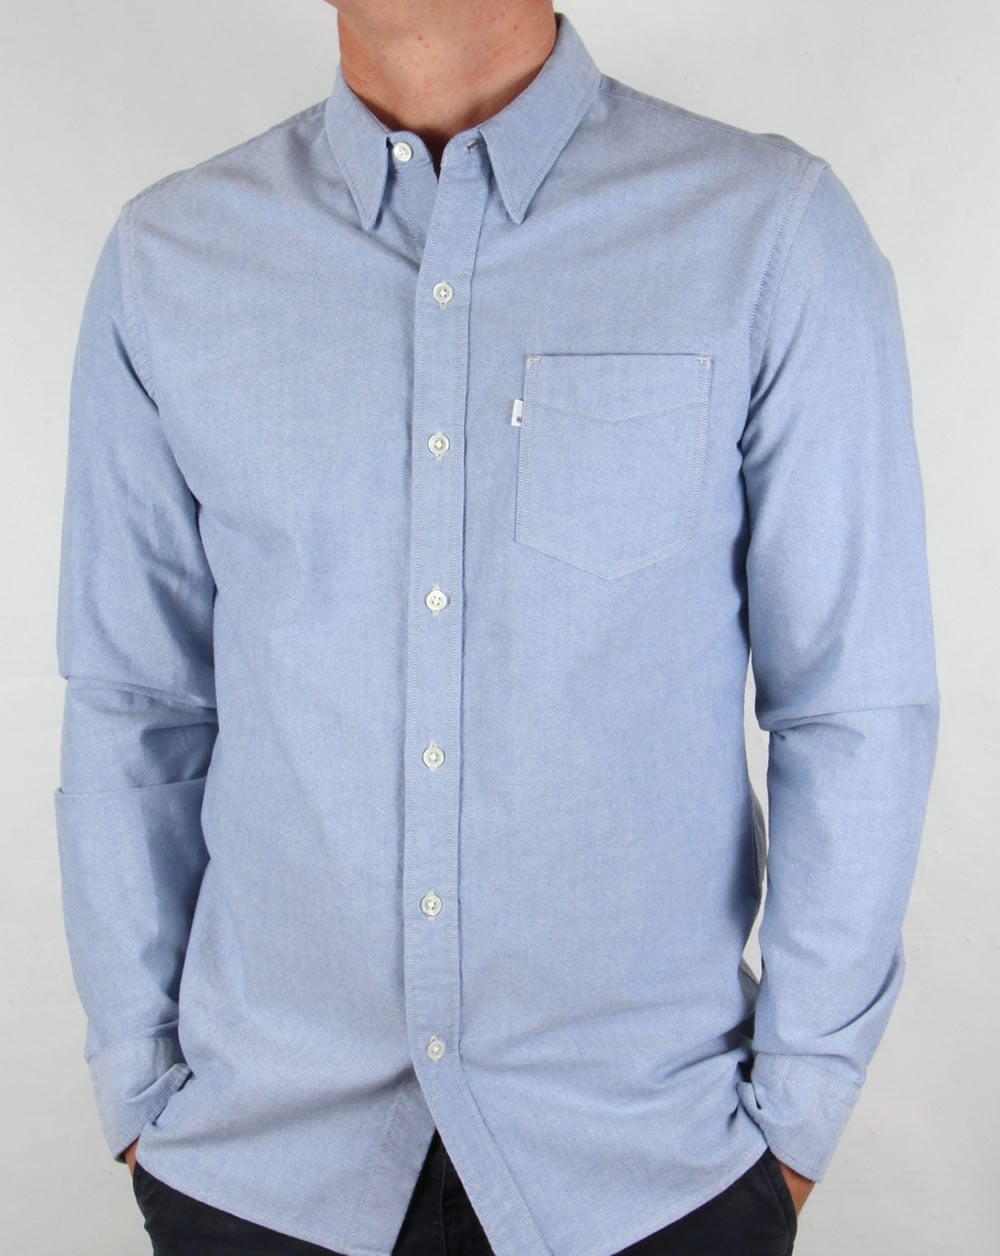 Levis Sunset One Pocket Shirt True Blue Oxford Mens Cotton